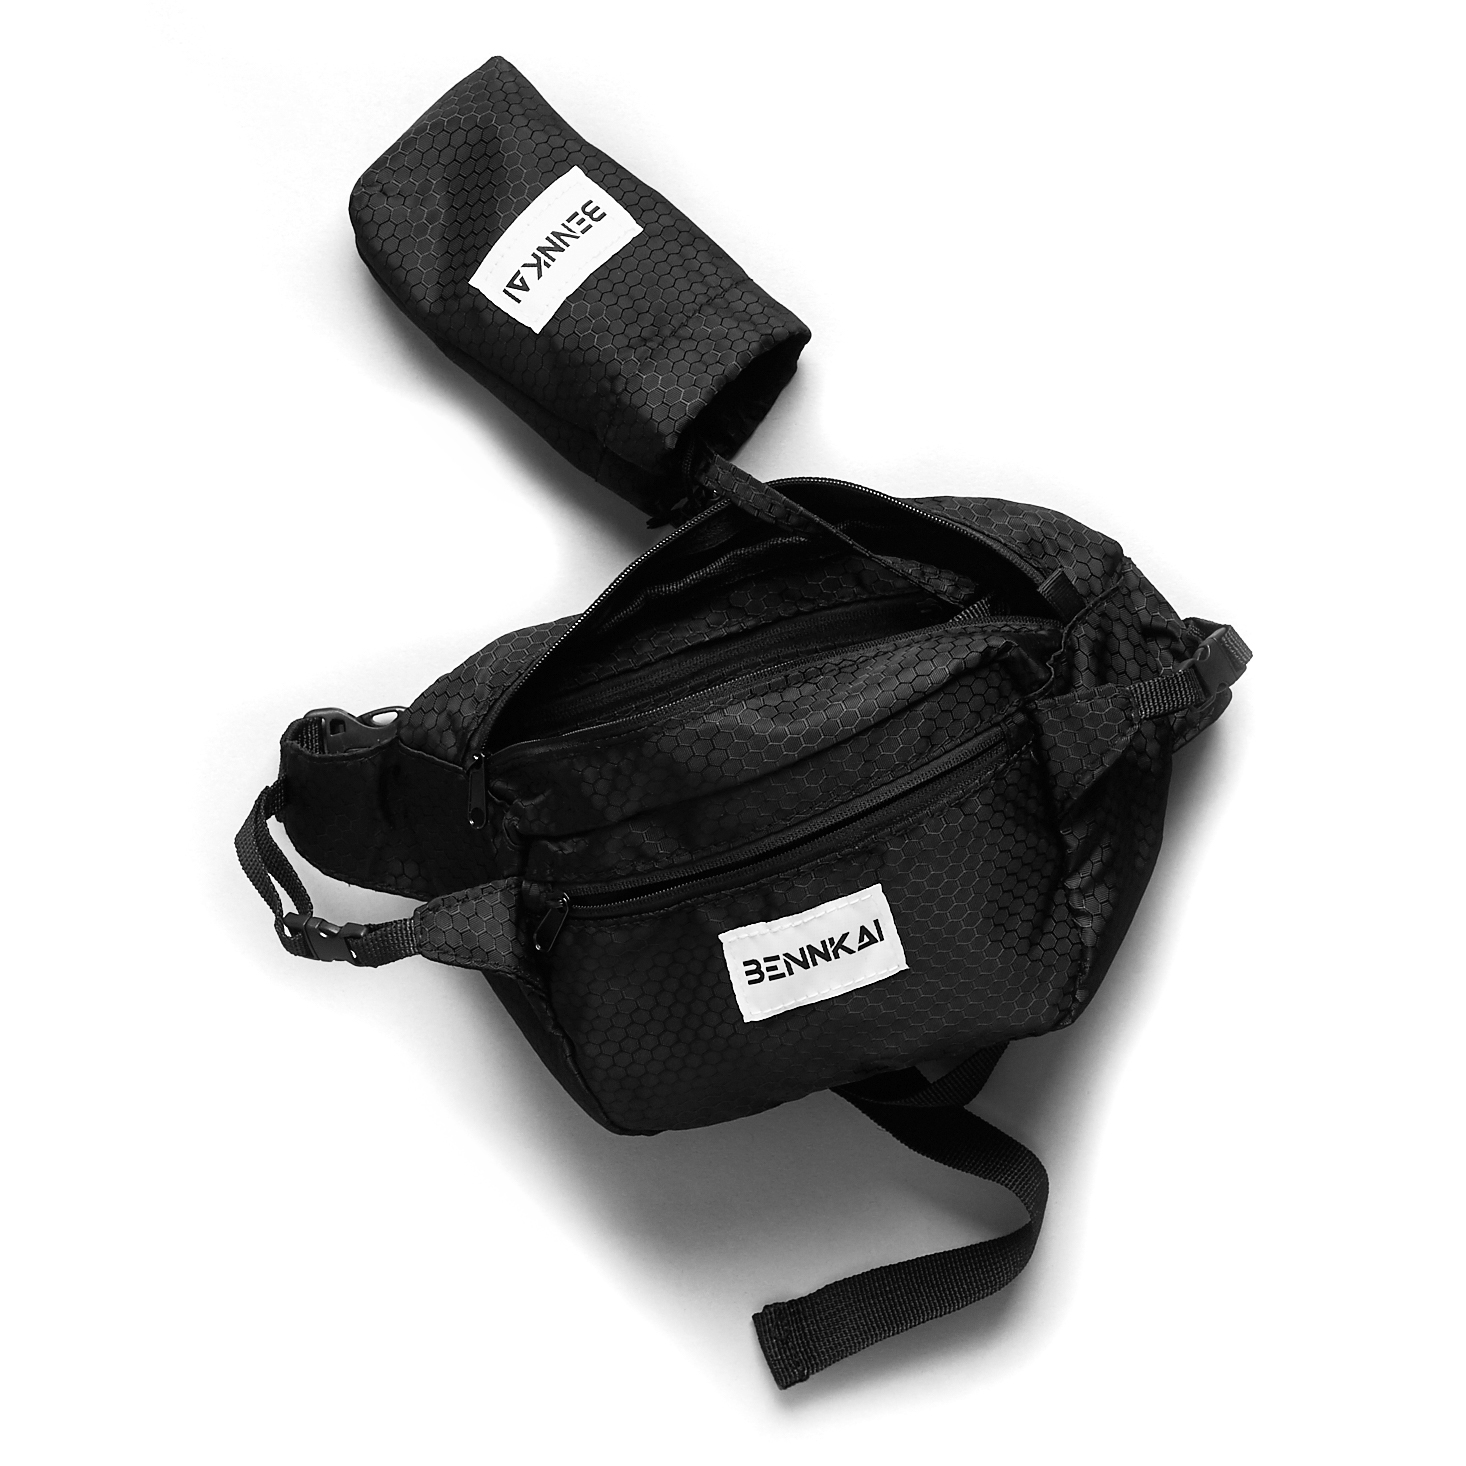 Bennkai Foldable Waist Pack